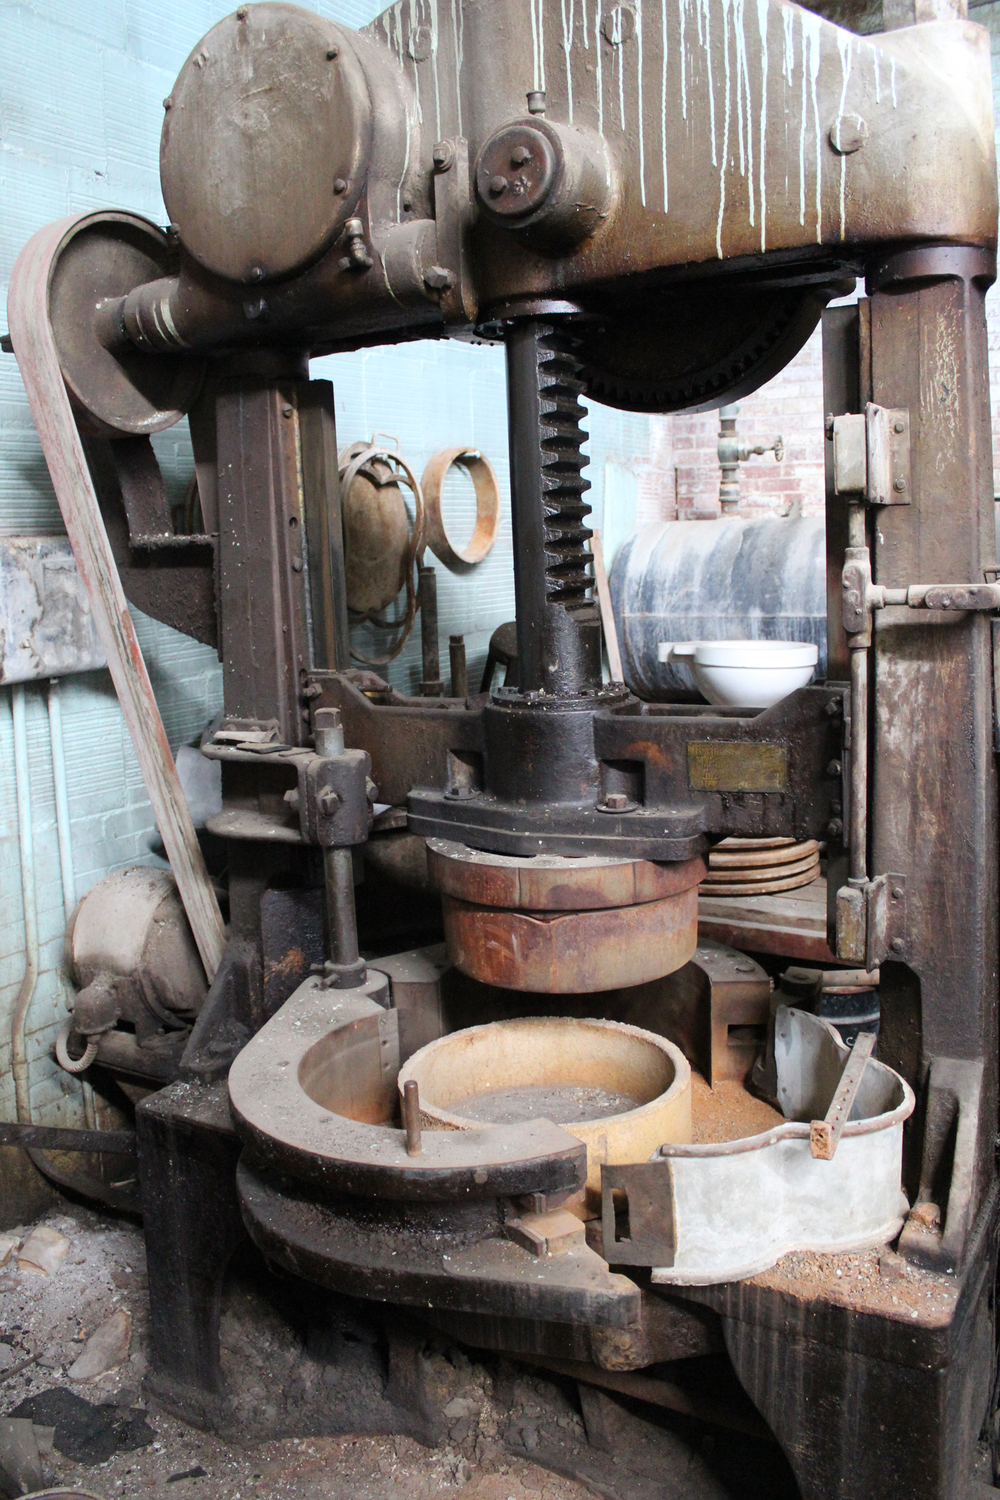 This is a press machine for making the saggars that the ware is fired in.